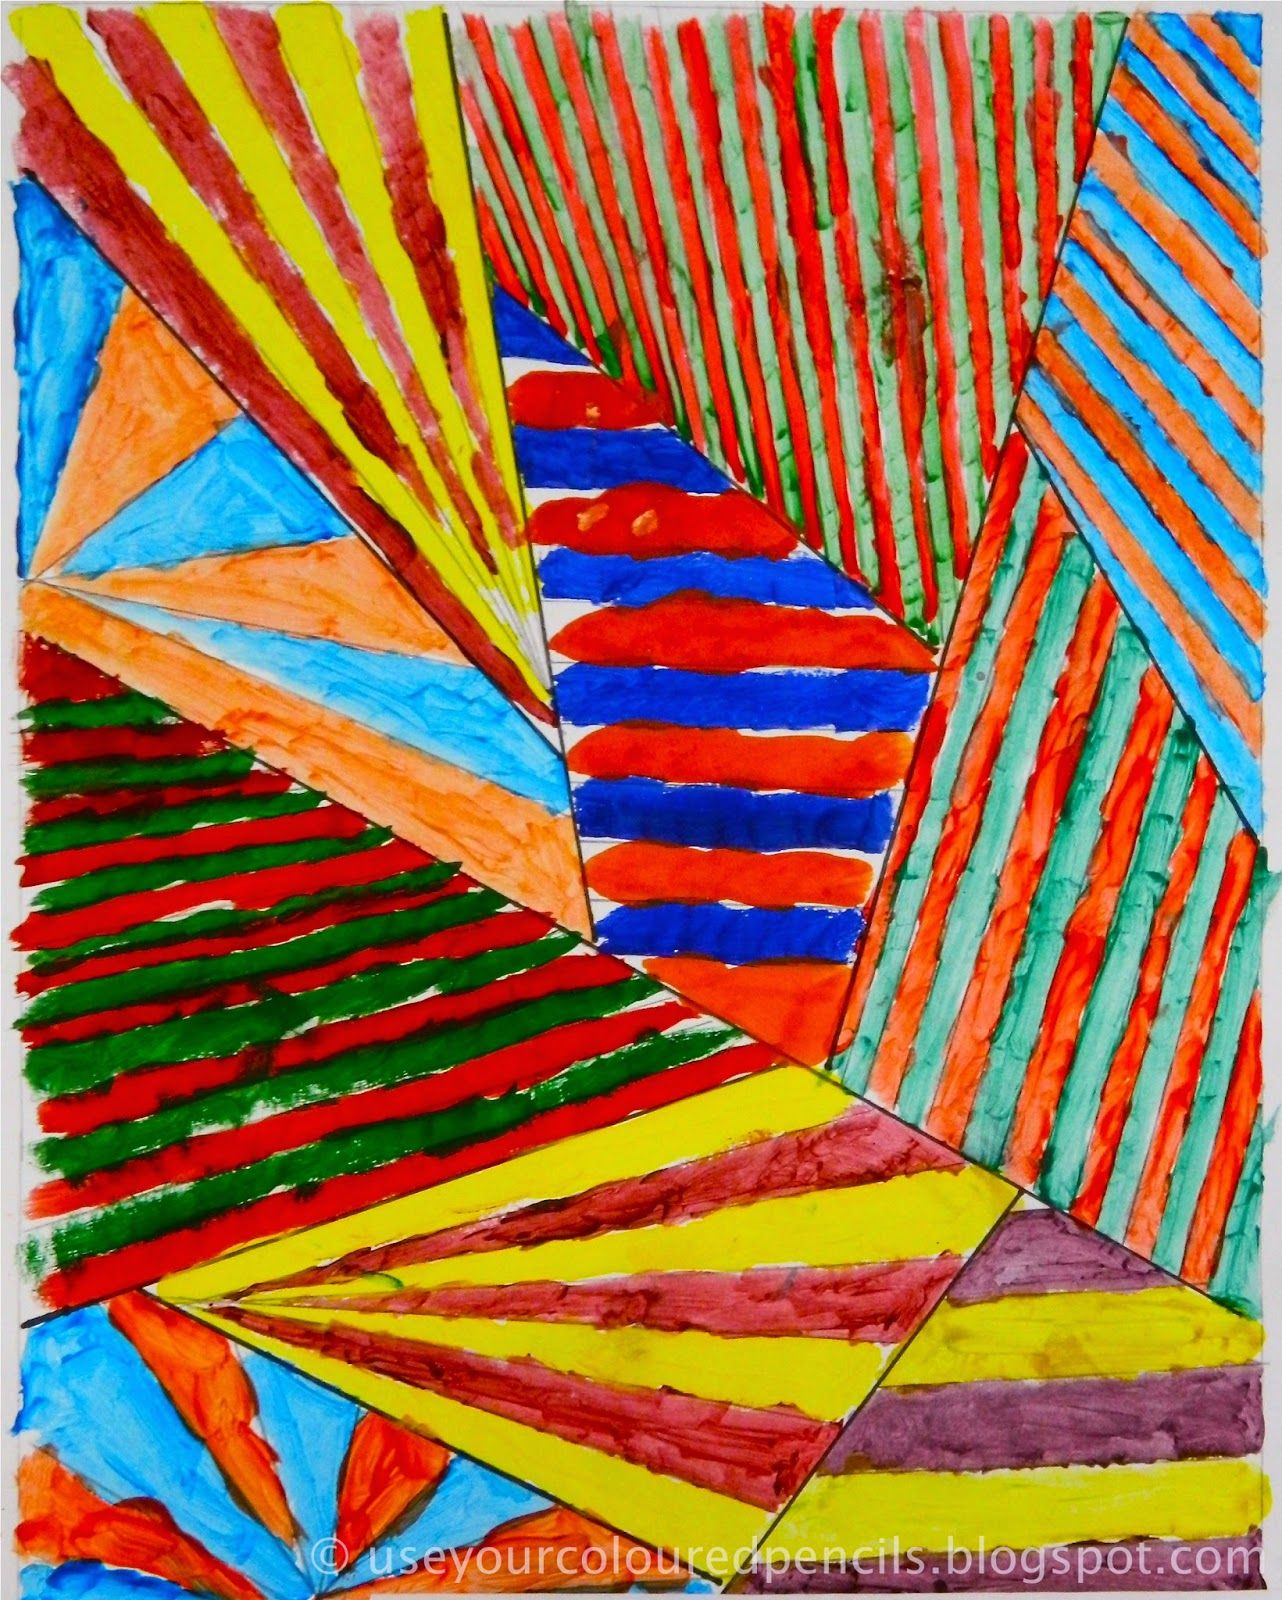 Use Your Coloured Pencils Abstracts In Complementary